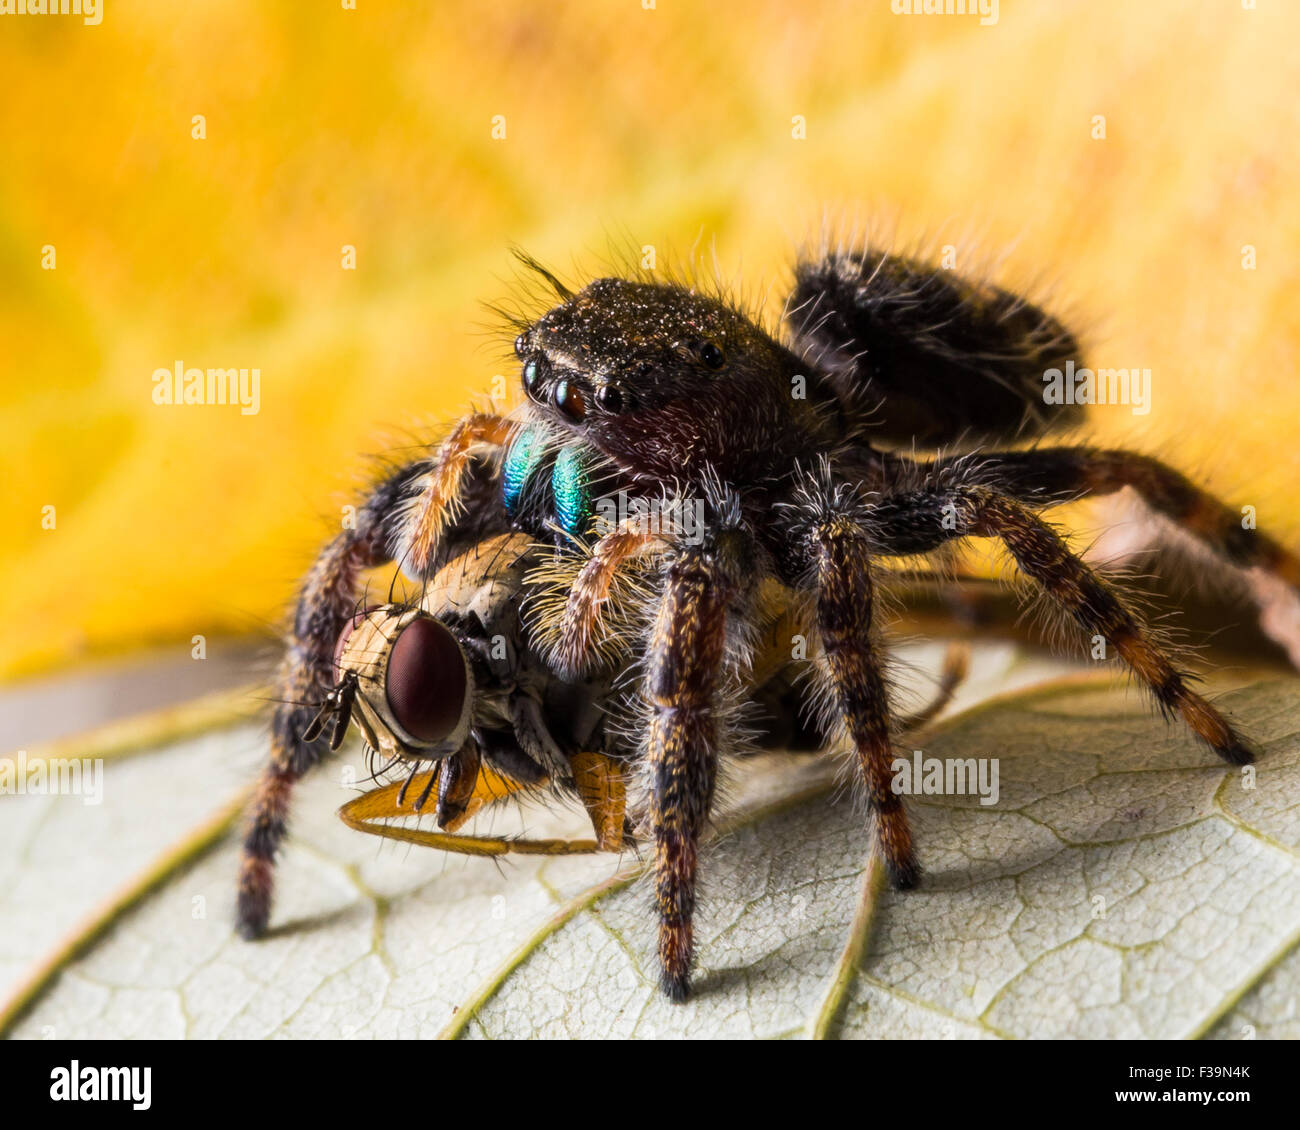 black jumping spider with shiny green mouth eats fly with red eyes on leaf